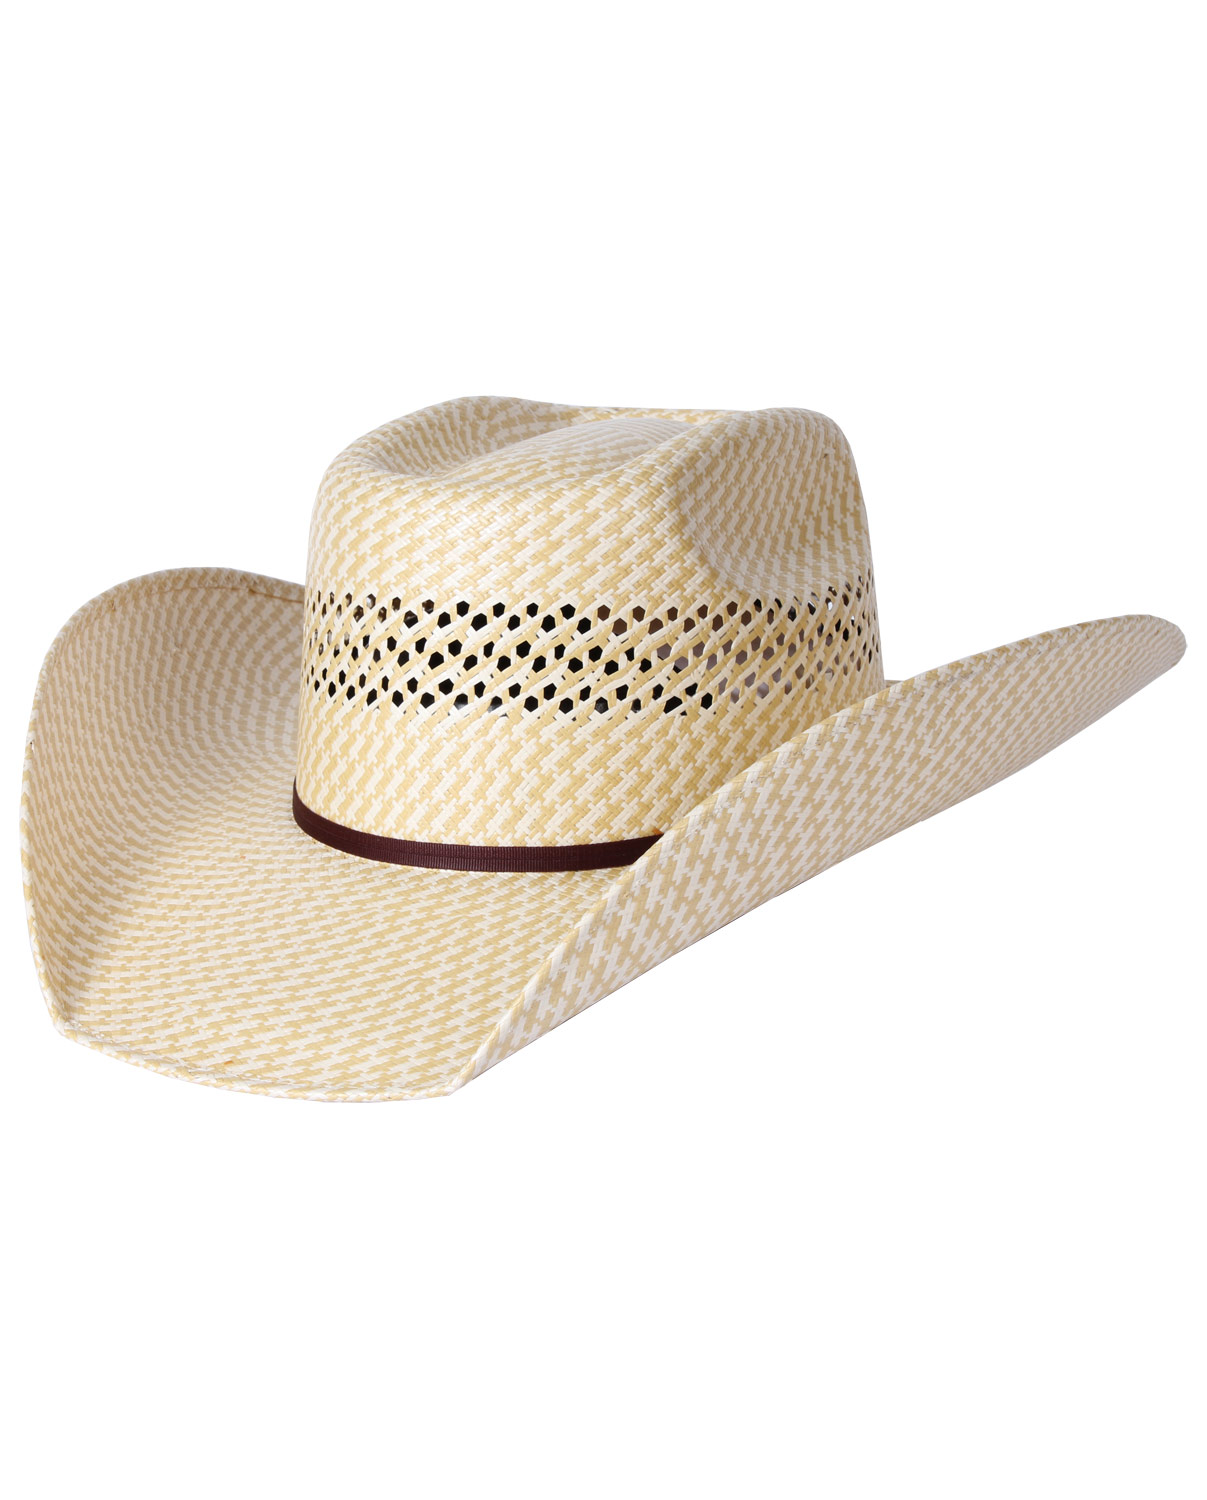 Straw Hats for Men – Tag Hats